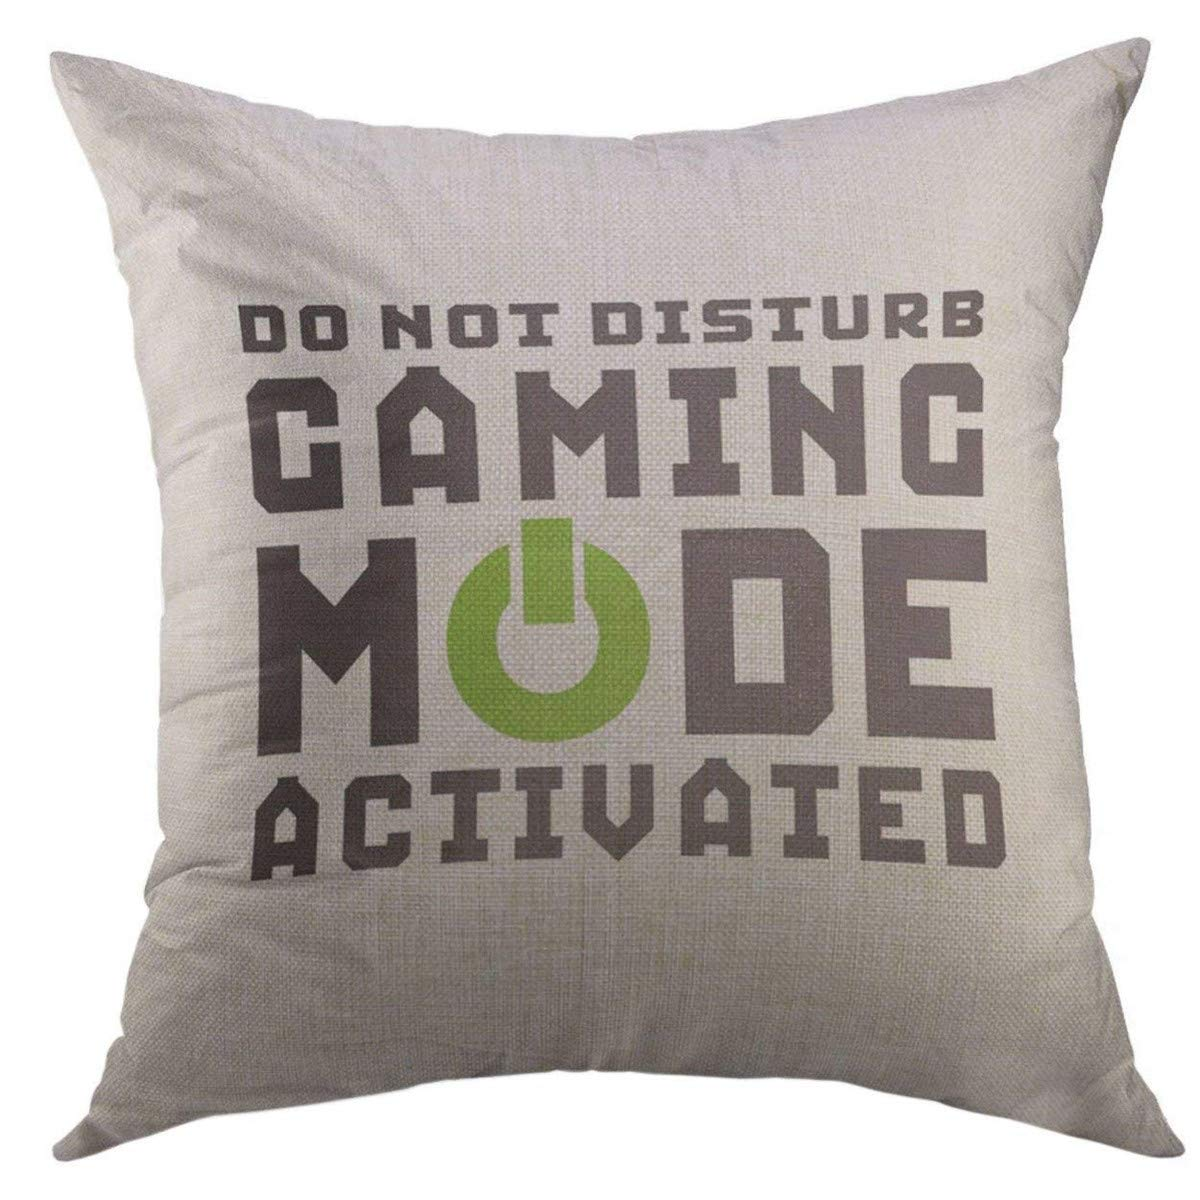 Pleasant Mugod Decorative Throw Pillow Cover For Couch Sofa Quote Humor Funny Gamer For Video Games Geek Gaming Black Mode Home Decor Pillow Case 18X18 Inch Uwap Interior Chair Design Uwaporg